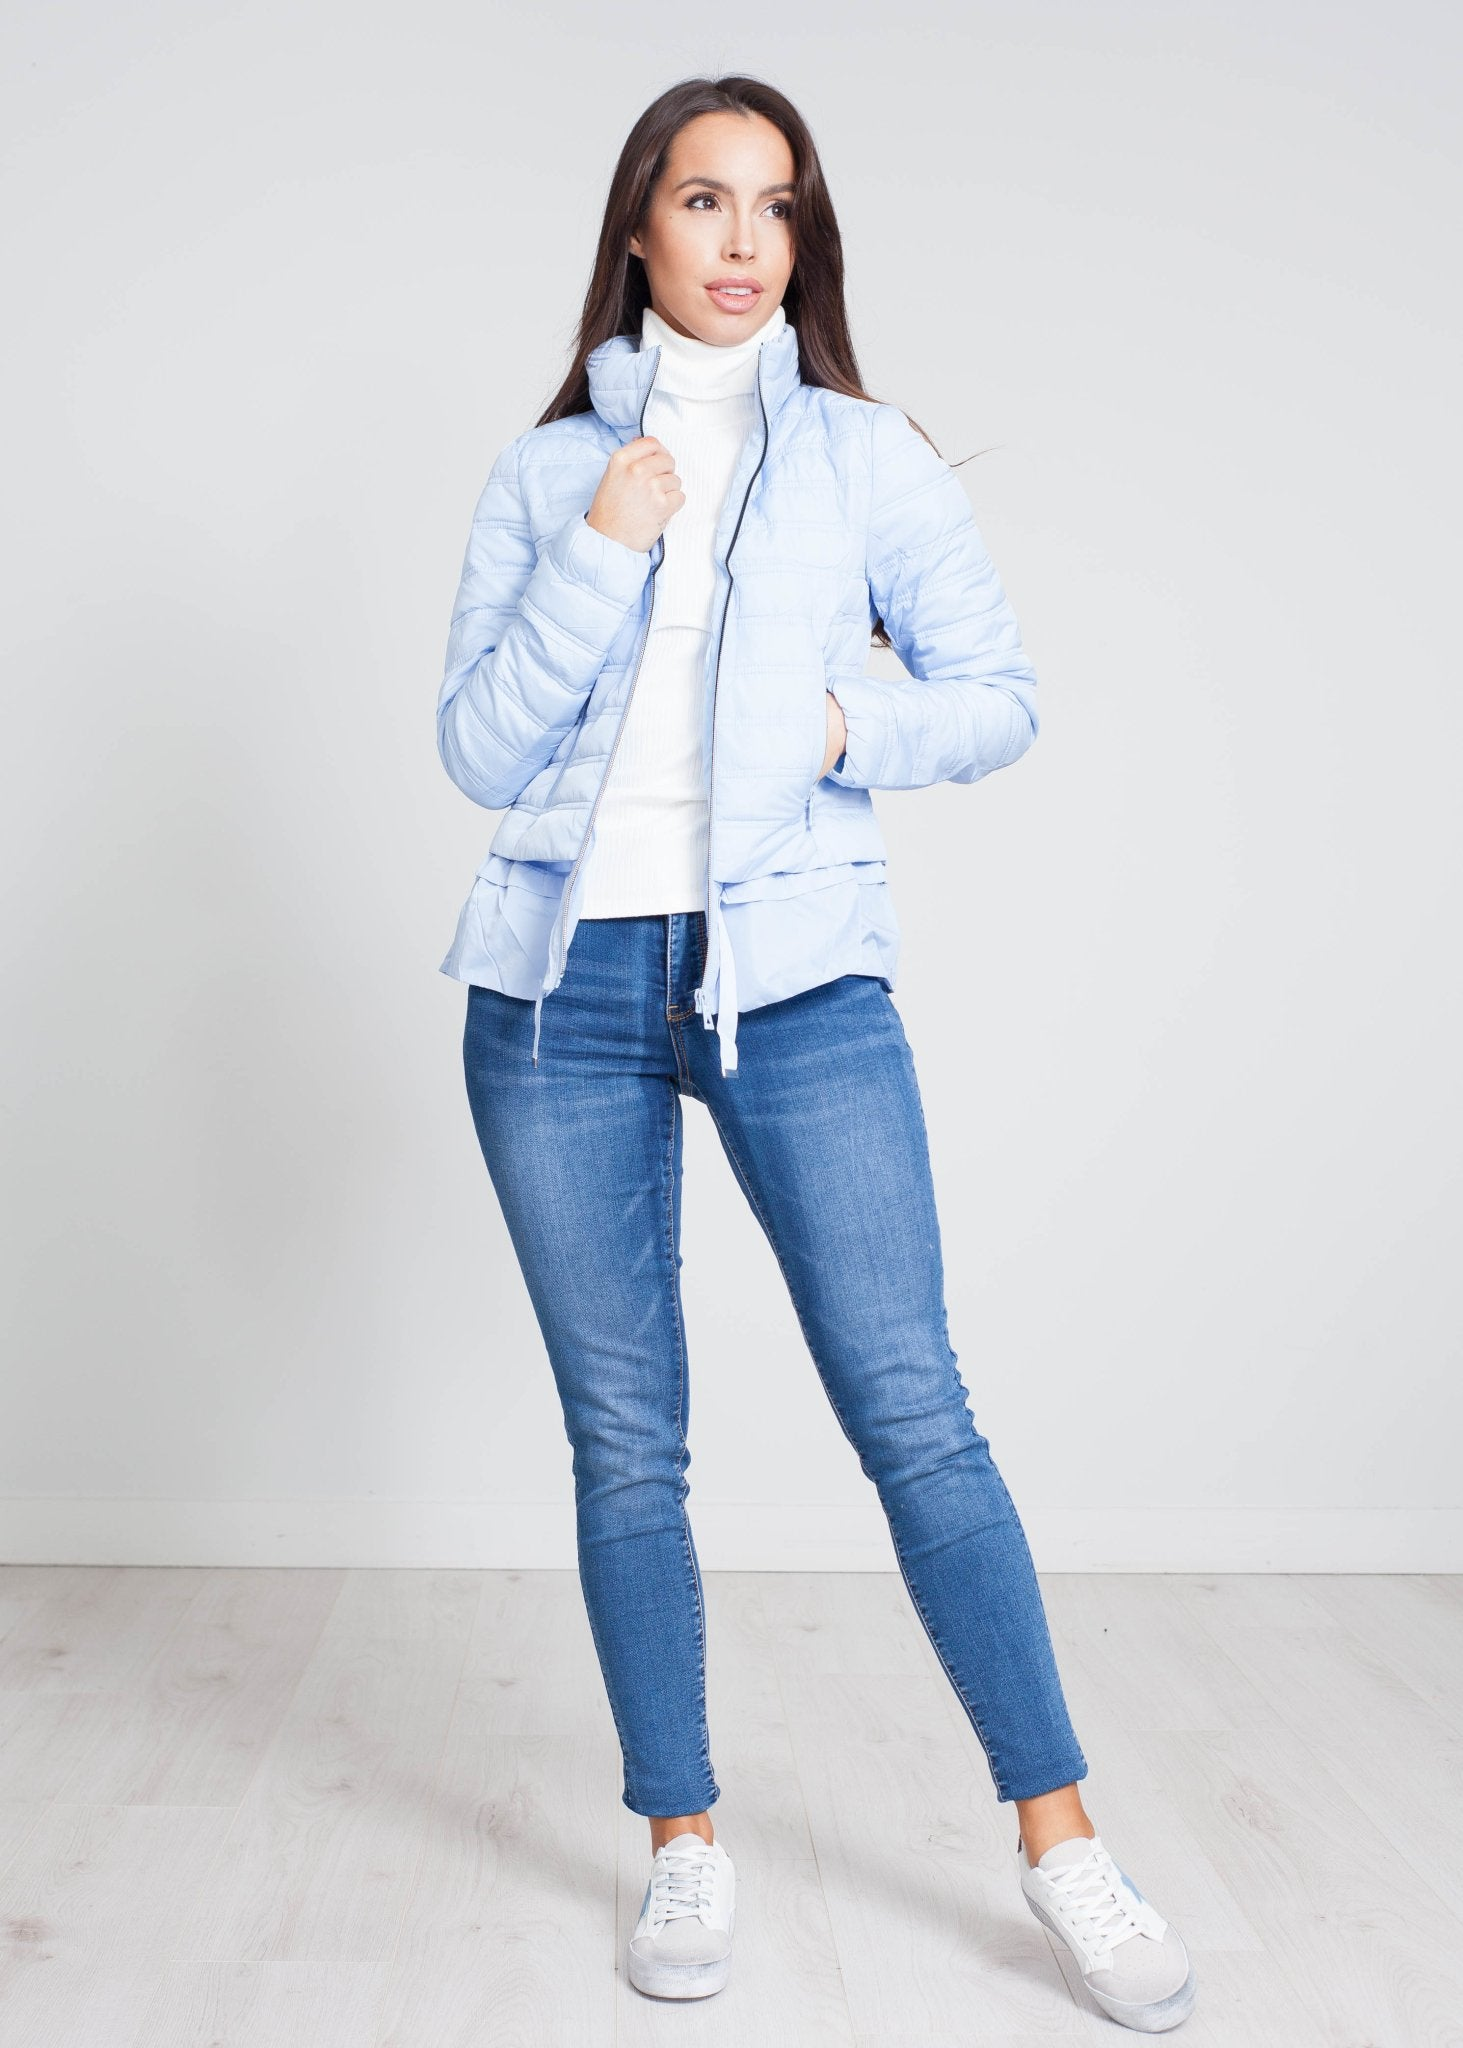 Alba Quilted Coat With Frill In Powder Blue - The Walk in Wardrobe